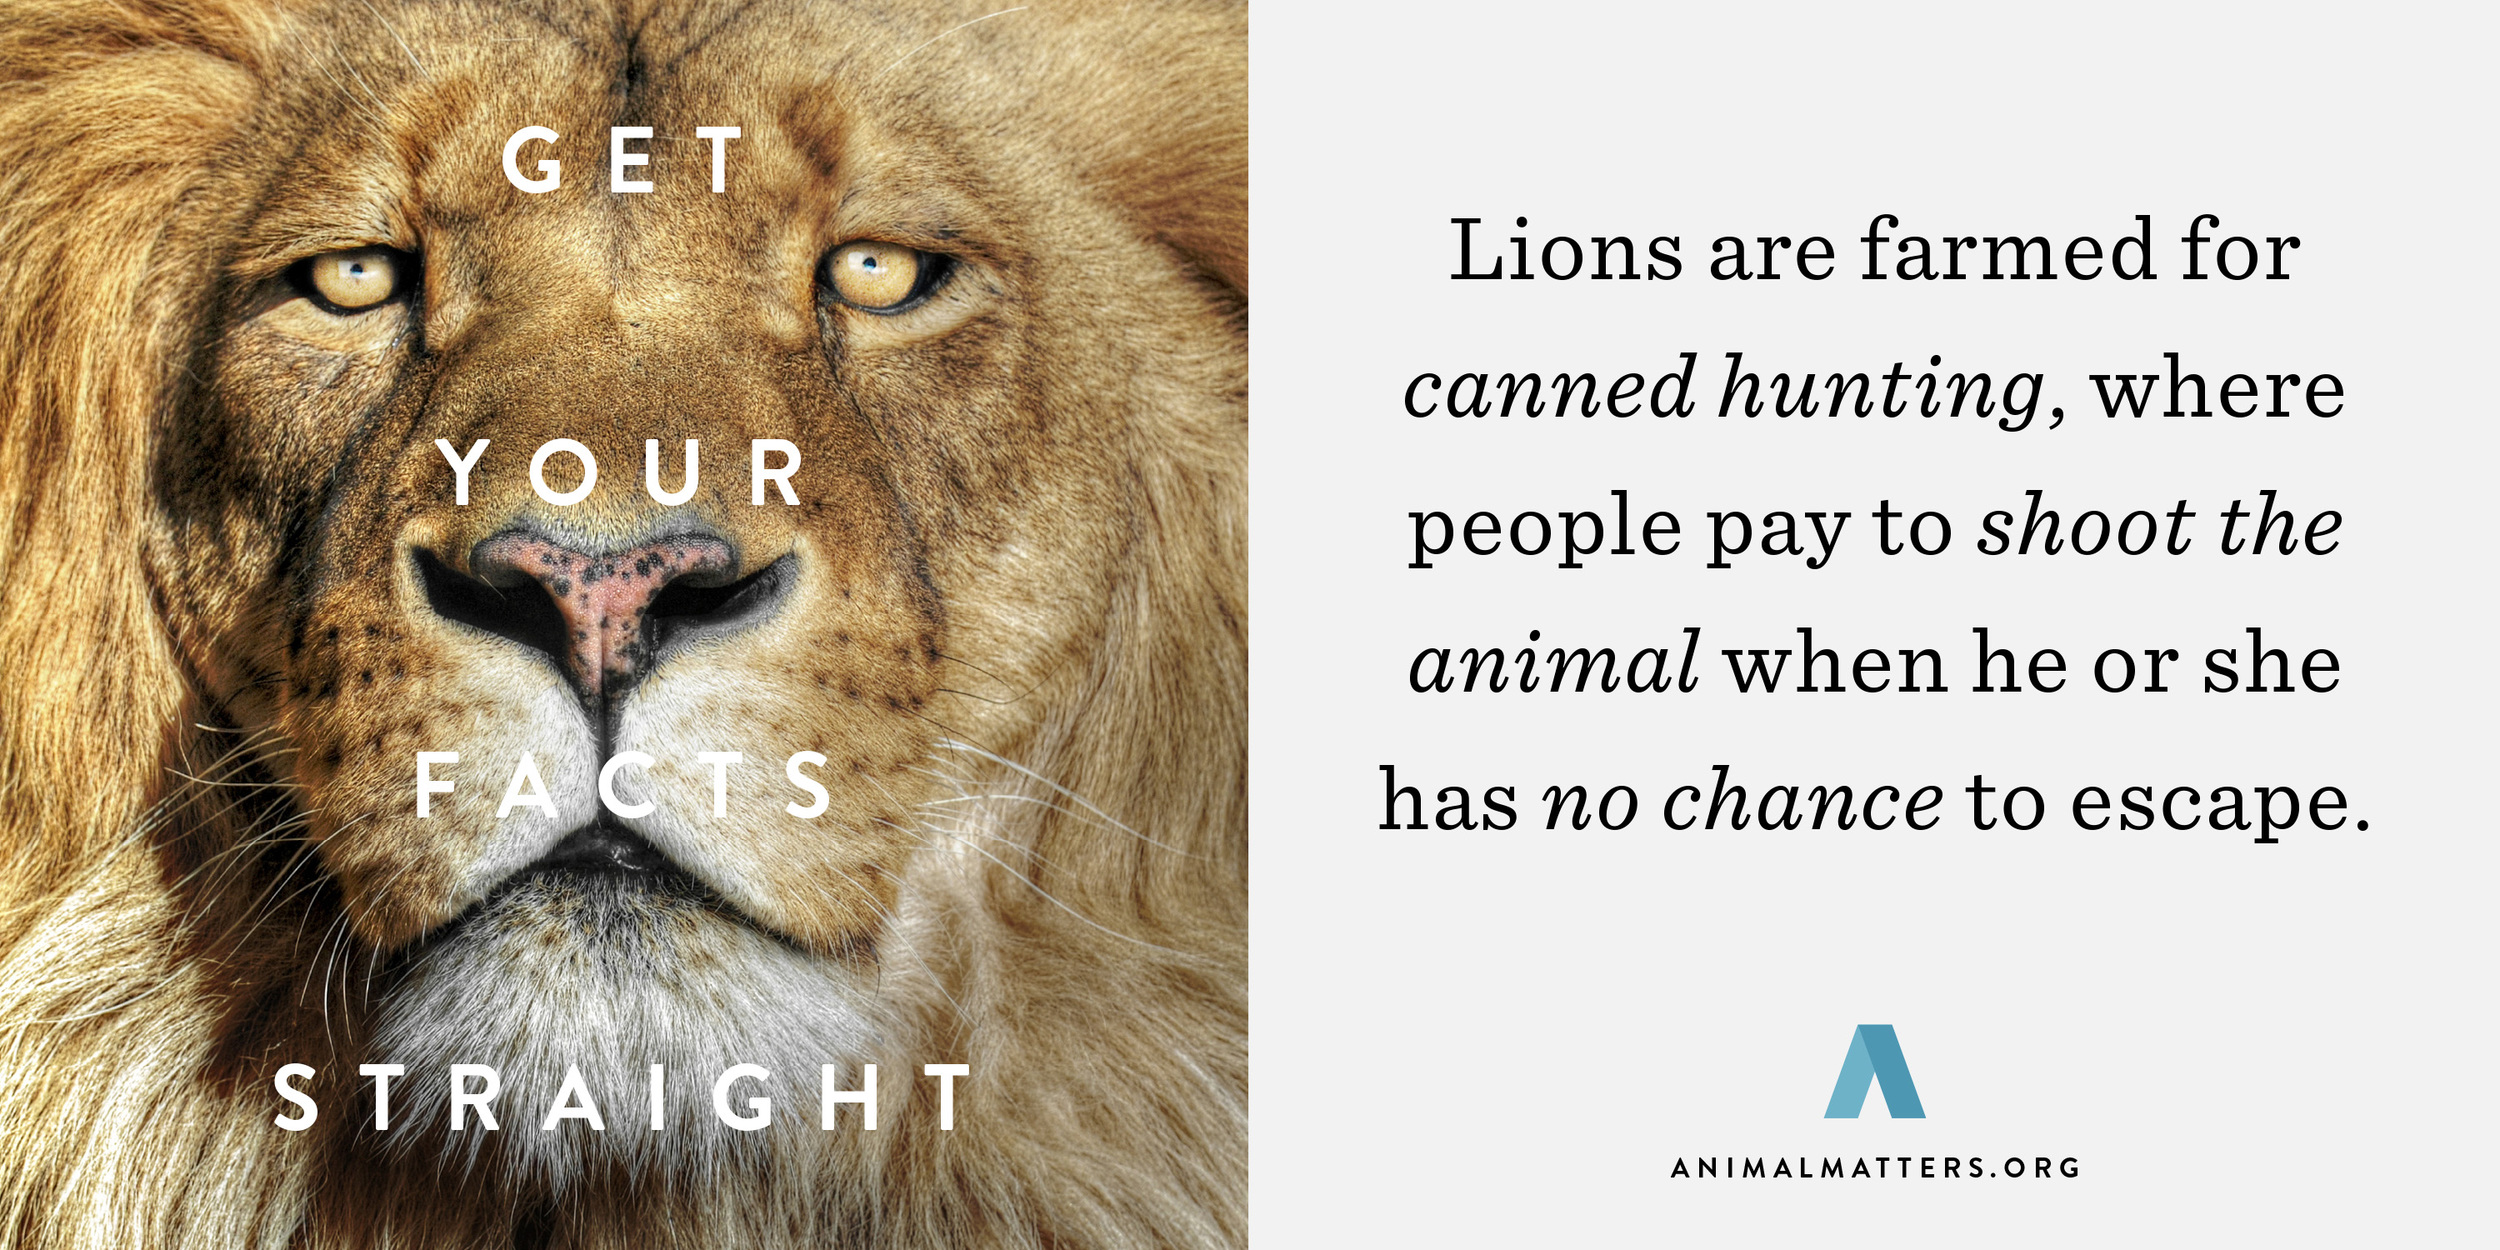 Lion-Canned-Hunting-Statistic